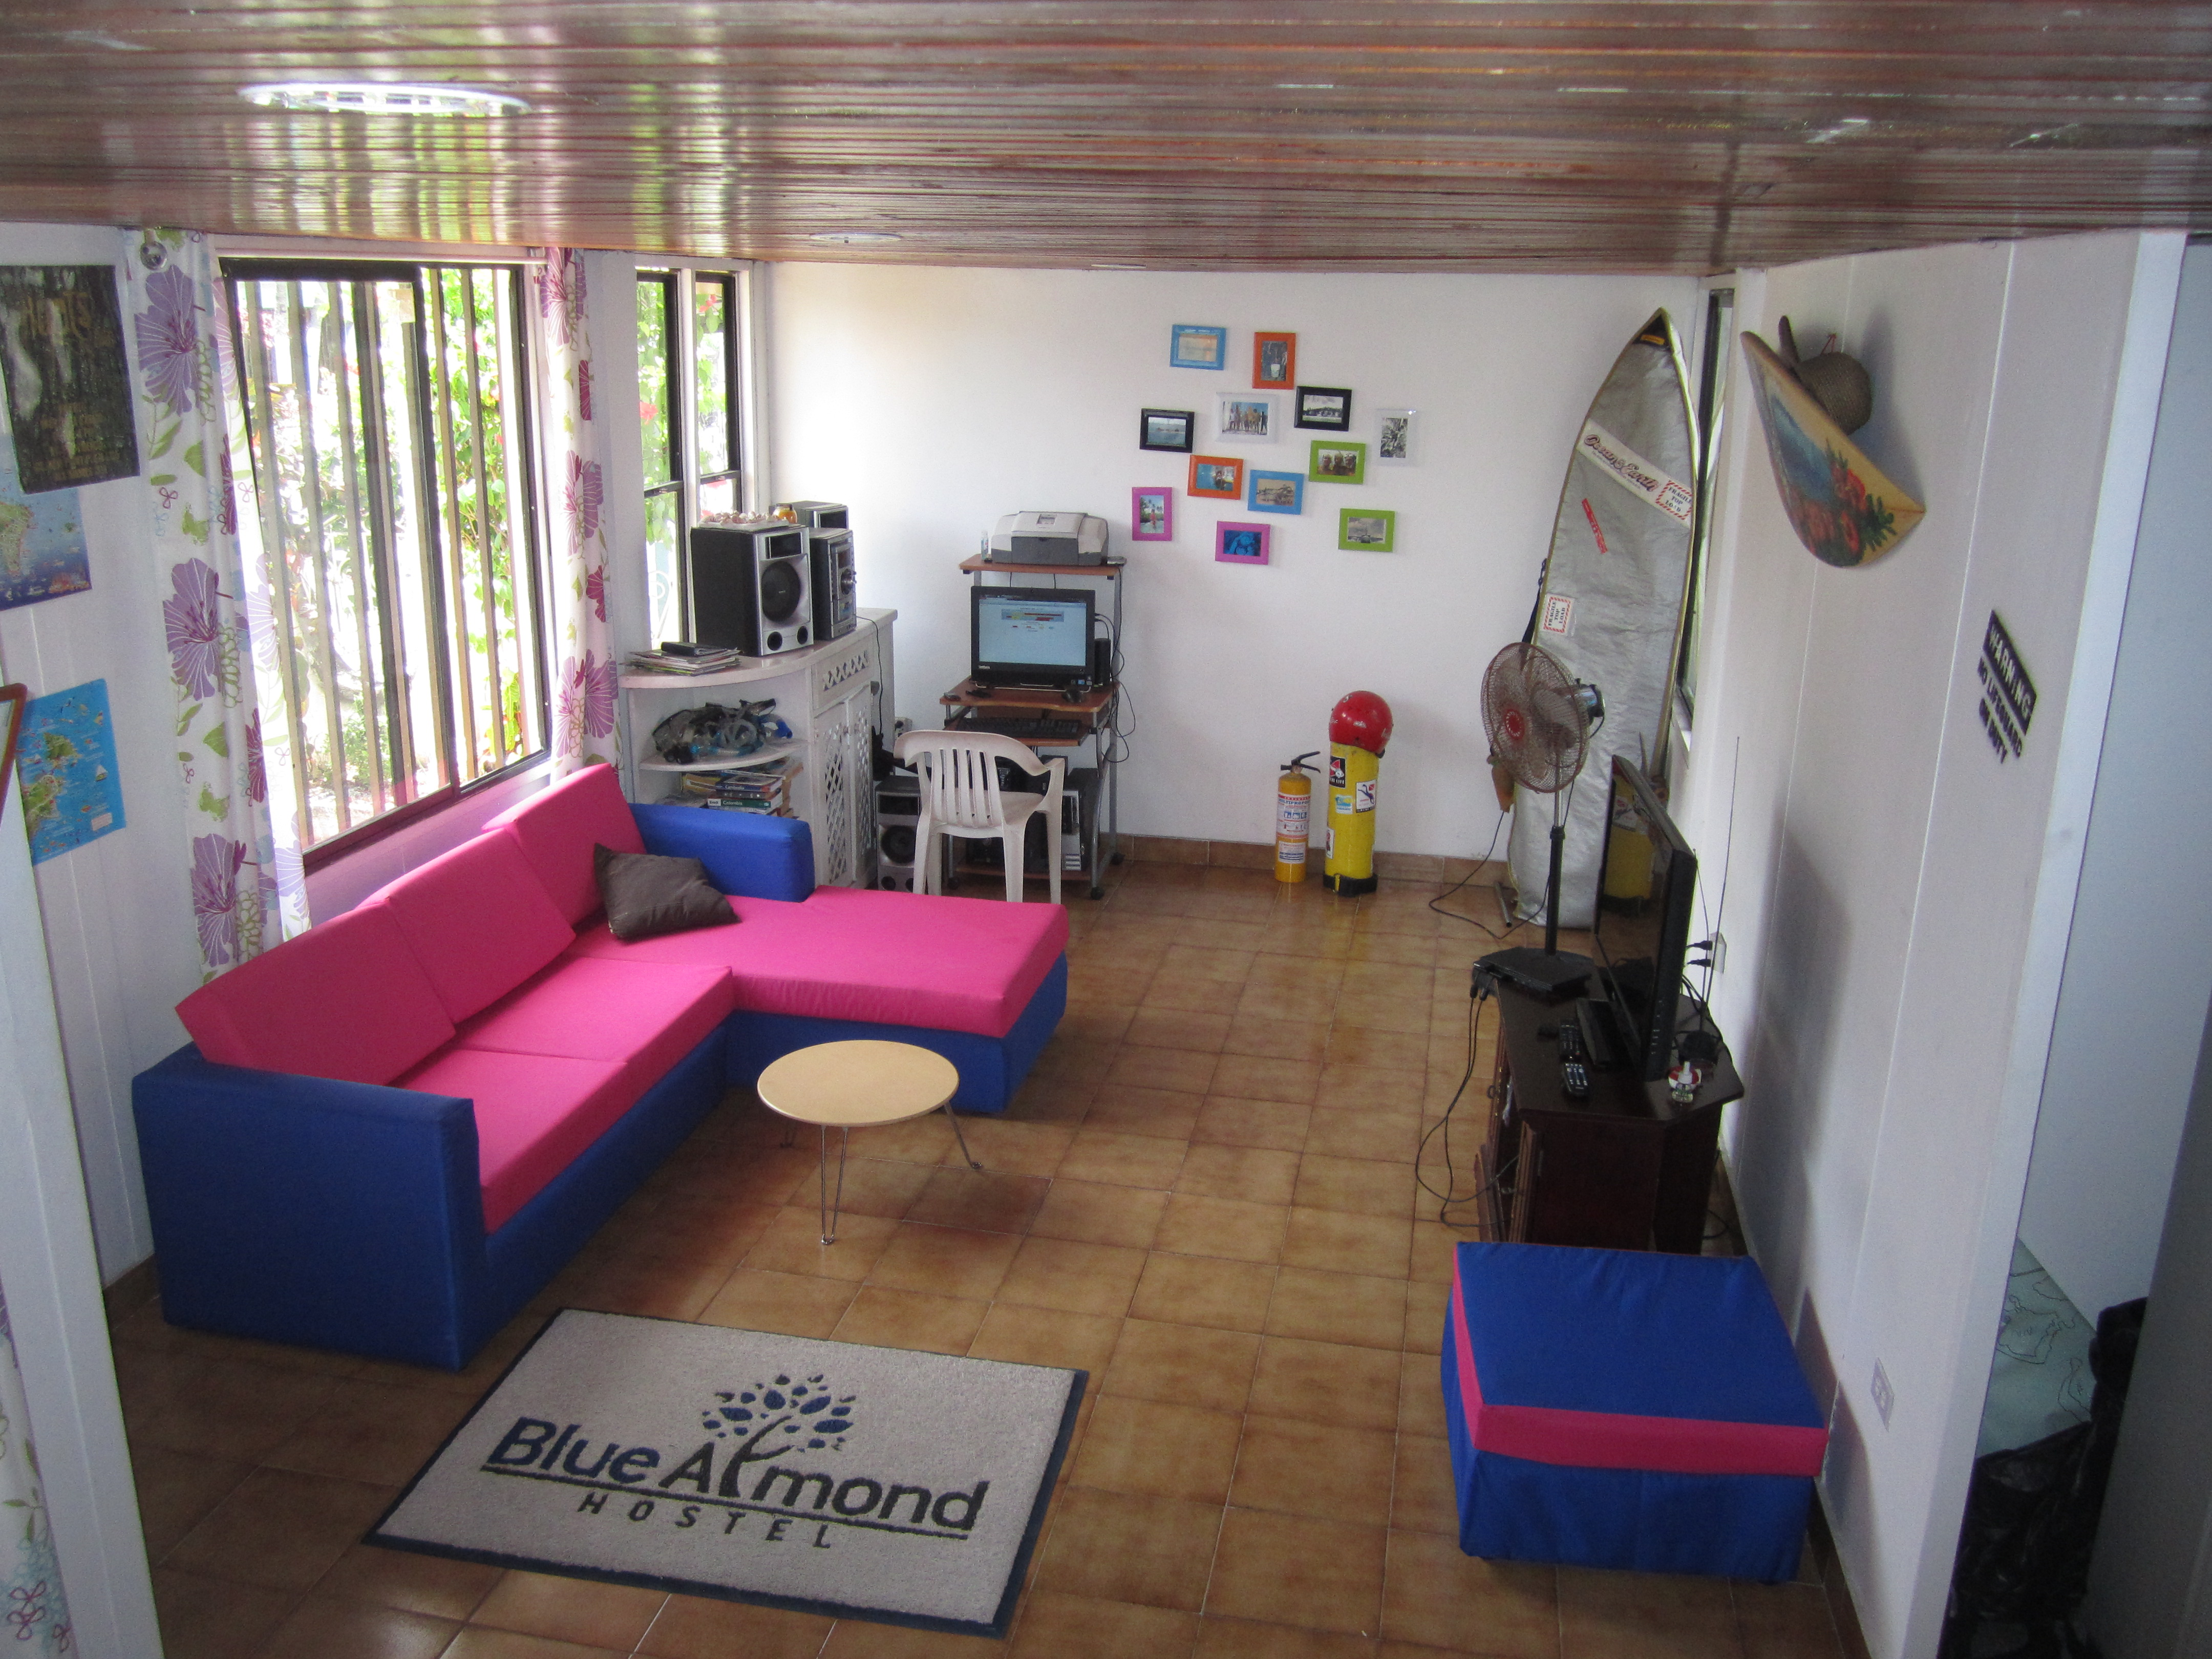 Blue Almond Hostel